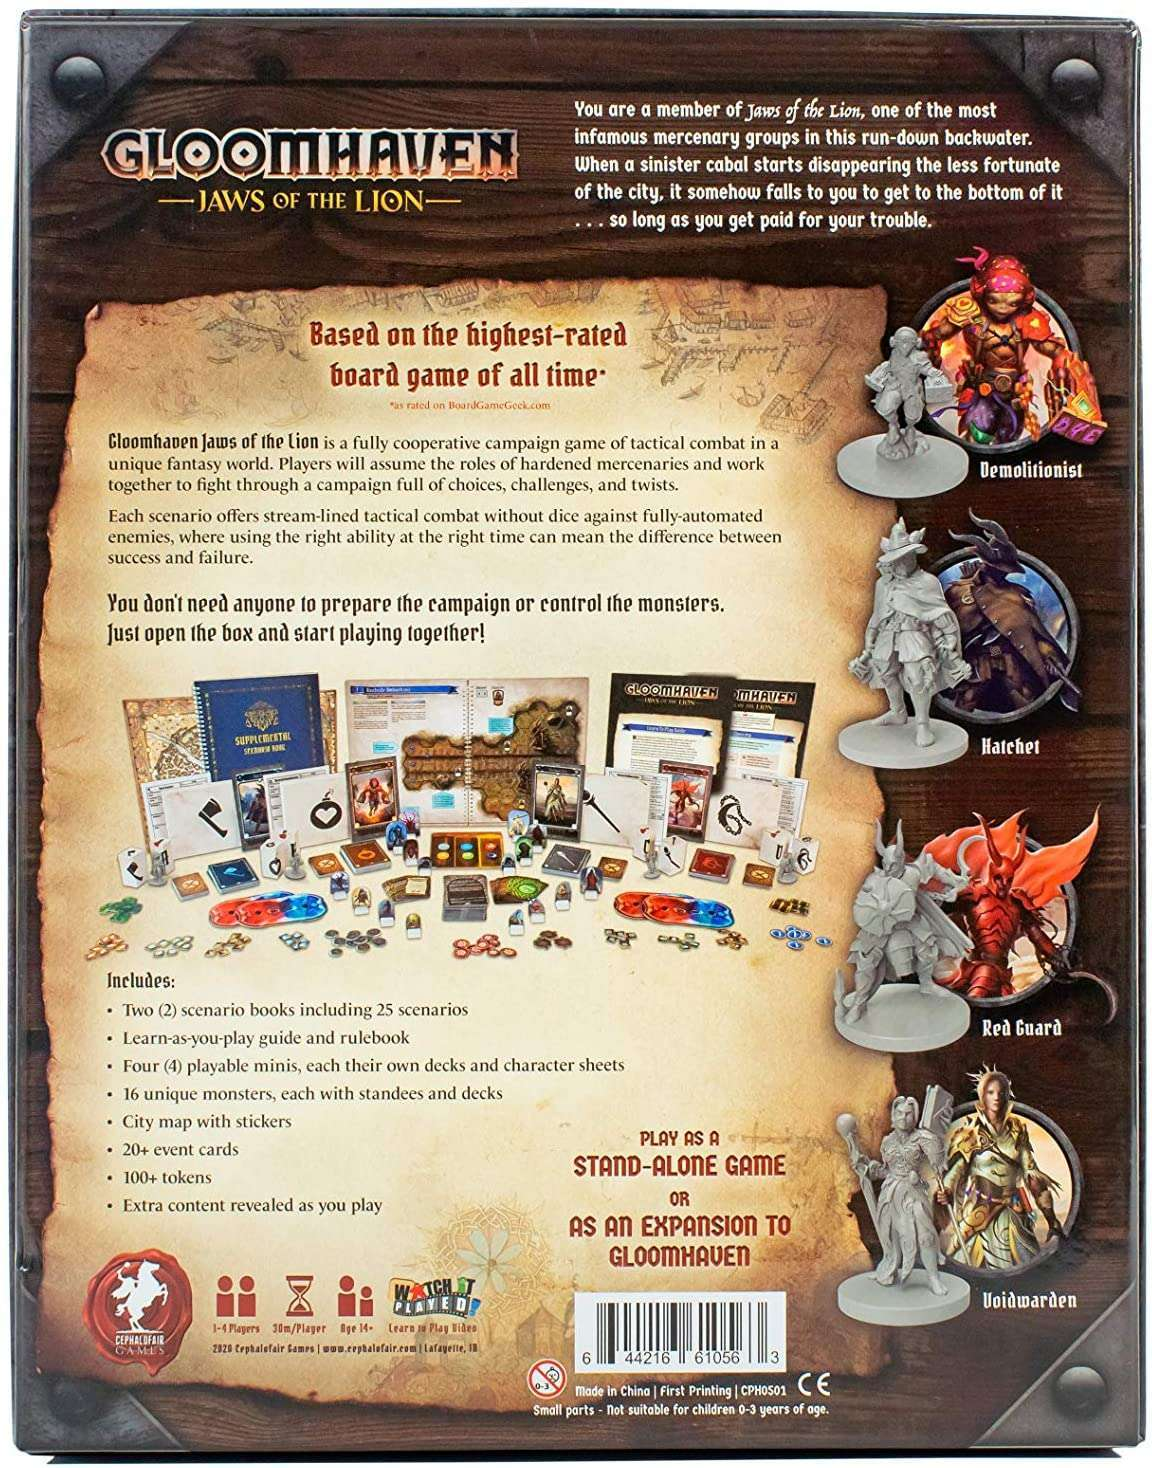 gloomhaven-jaws-of-the-lion815AuOhqw6L_AC_SL1500_